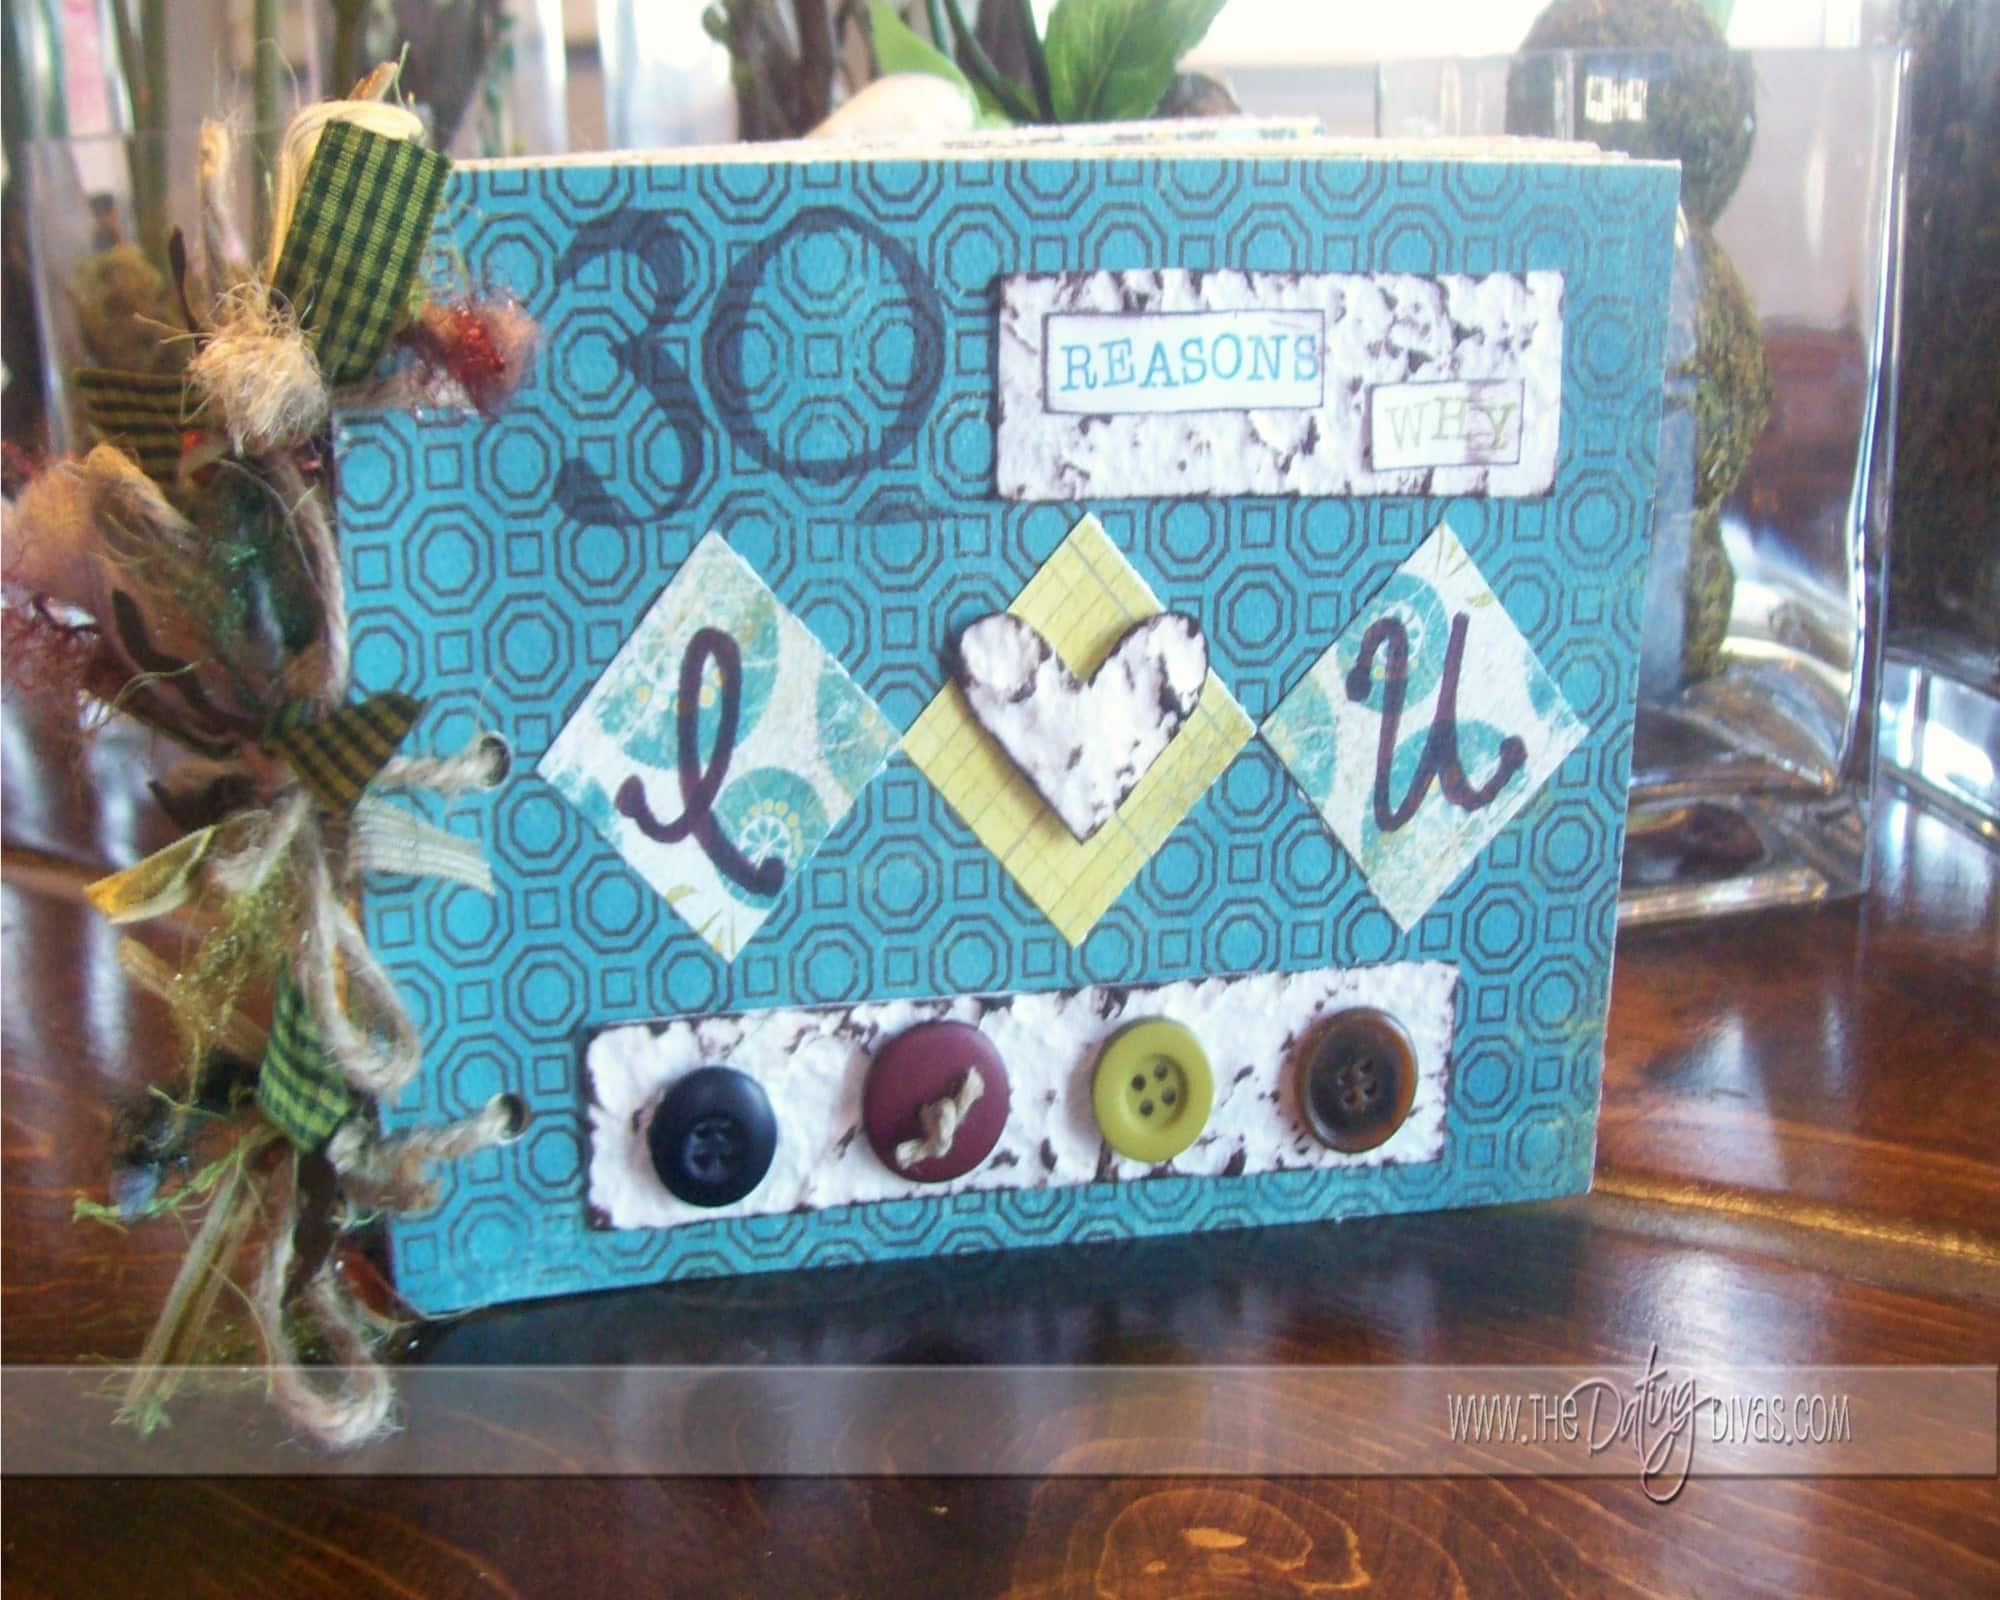 How to make scrapbook for husband - Alright